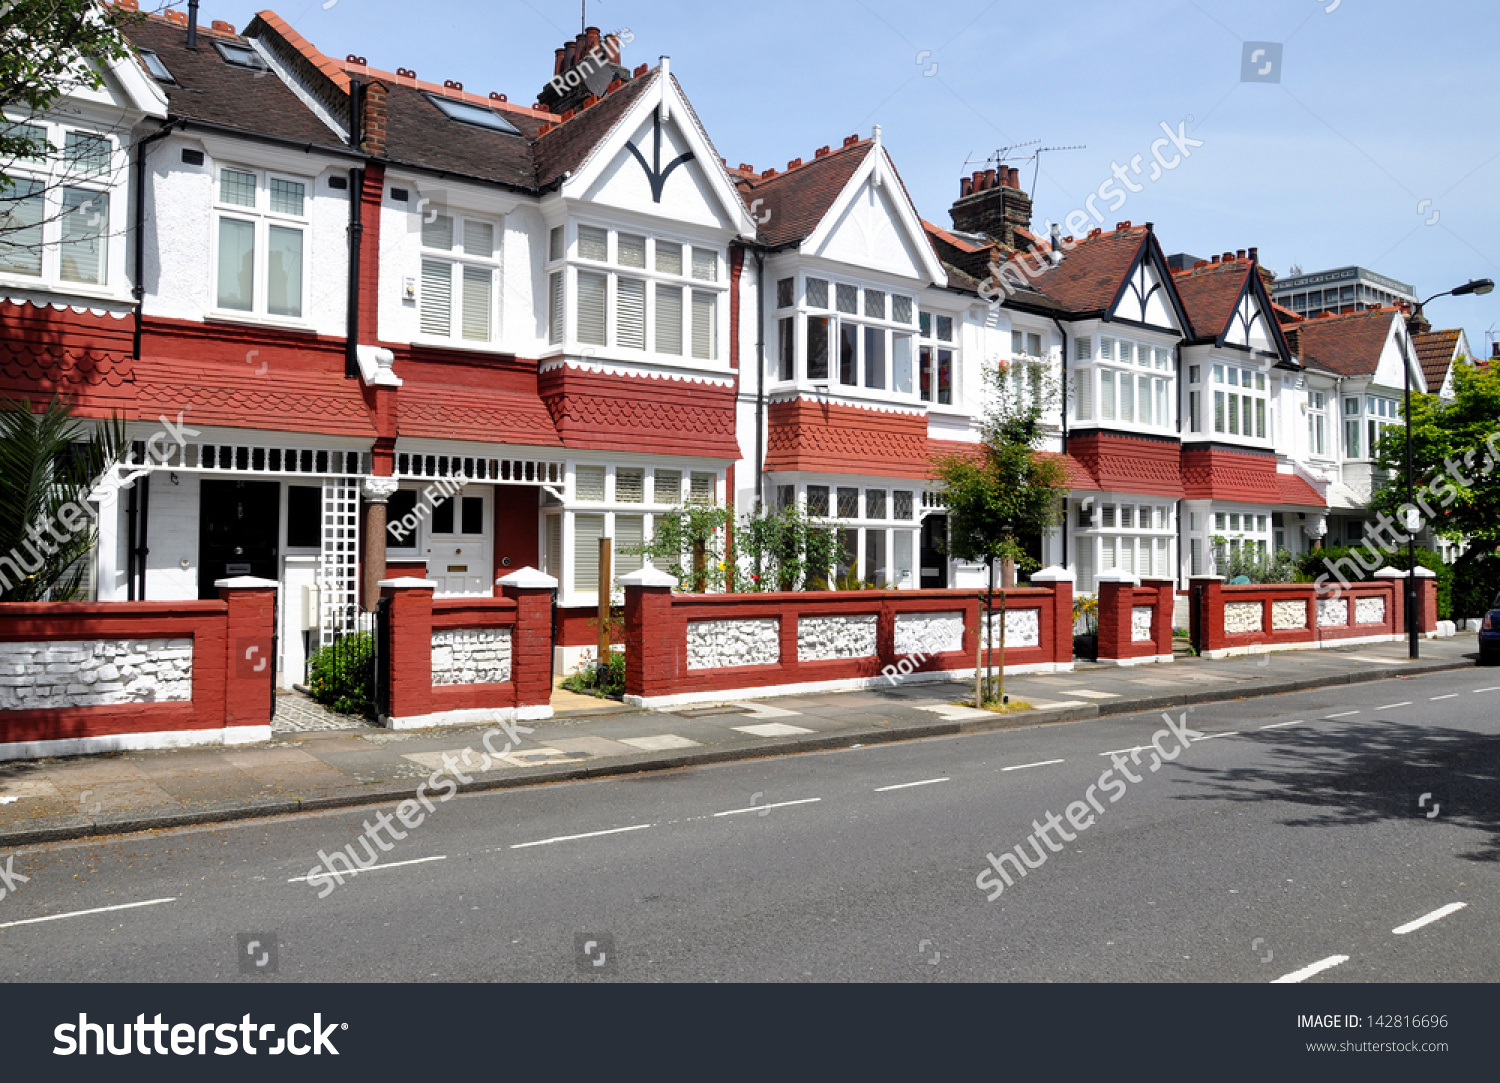 stock-photo-london-street-of-typical-sma